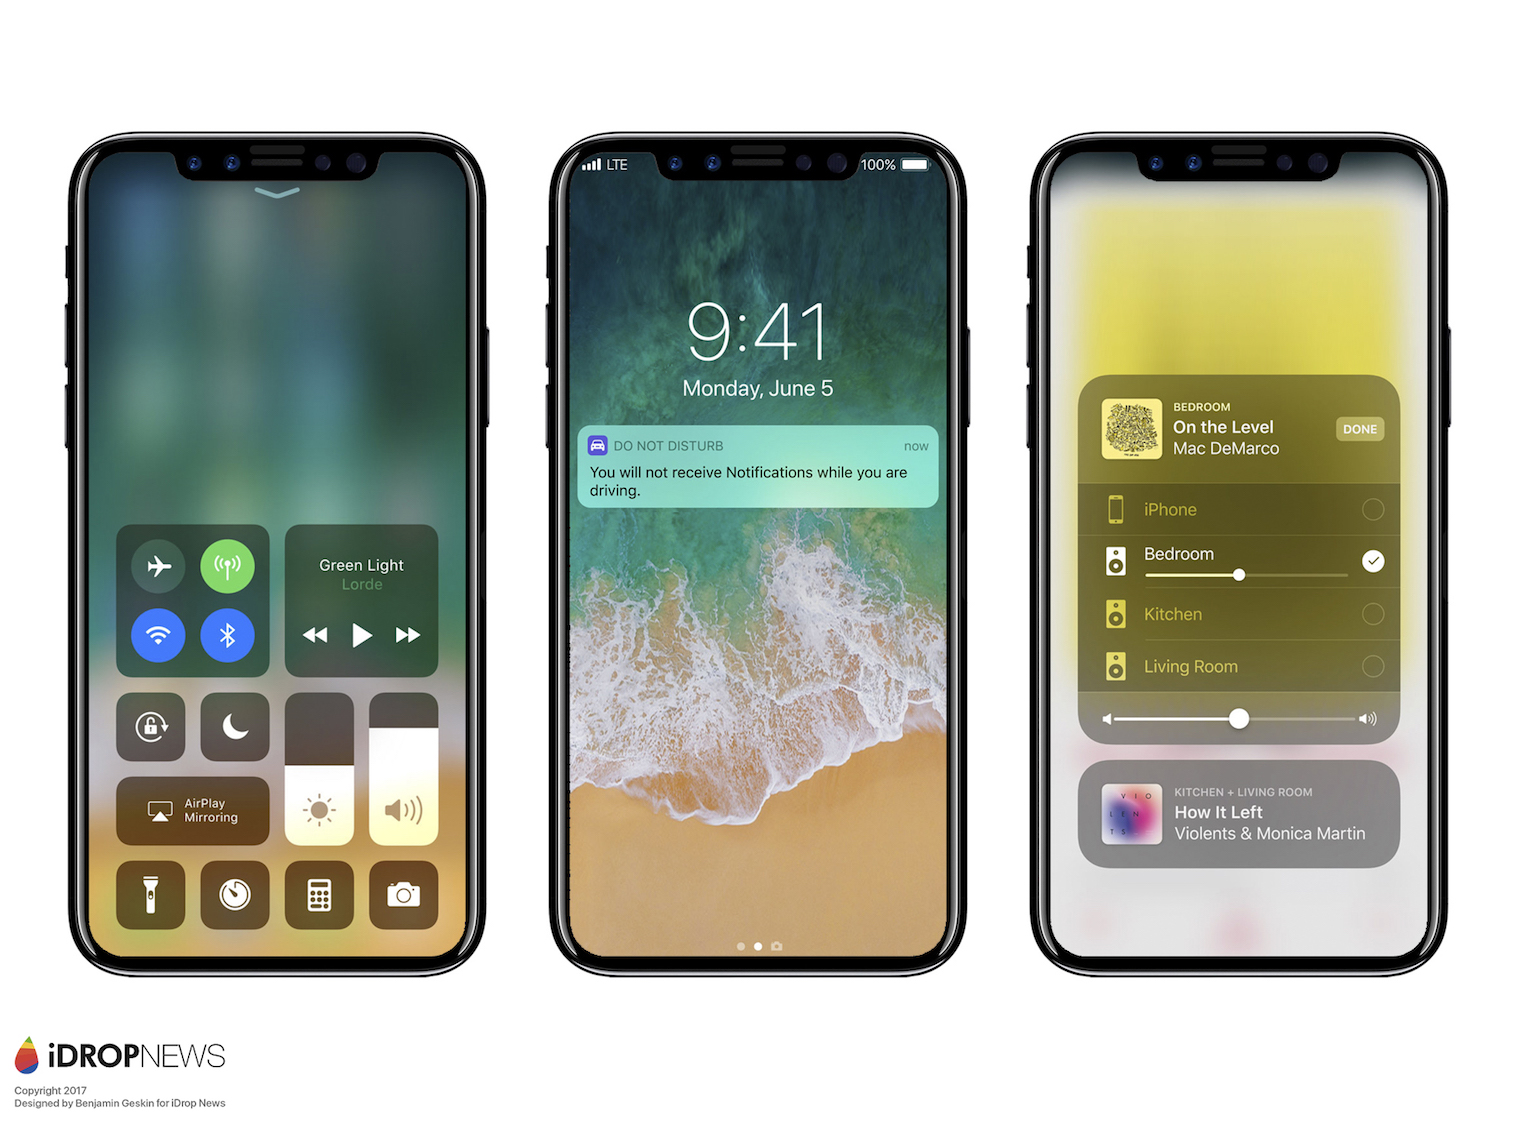 iPhone-X-iDrop-News-1